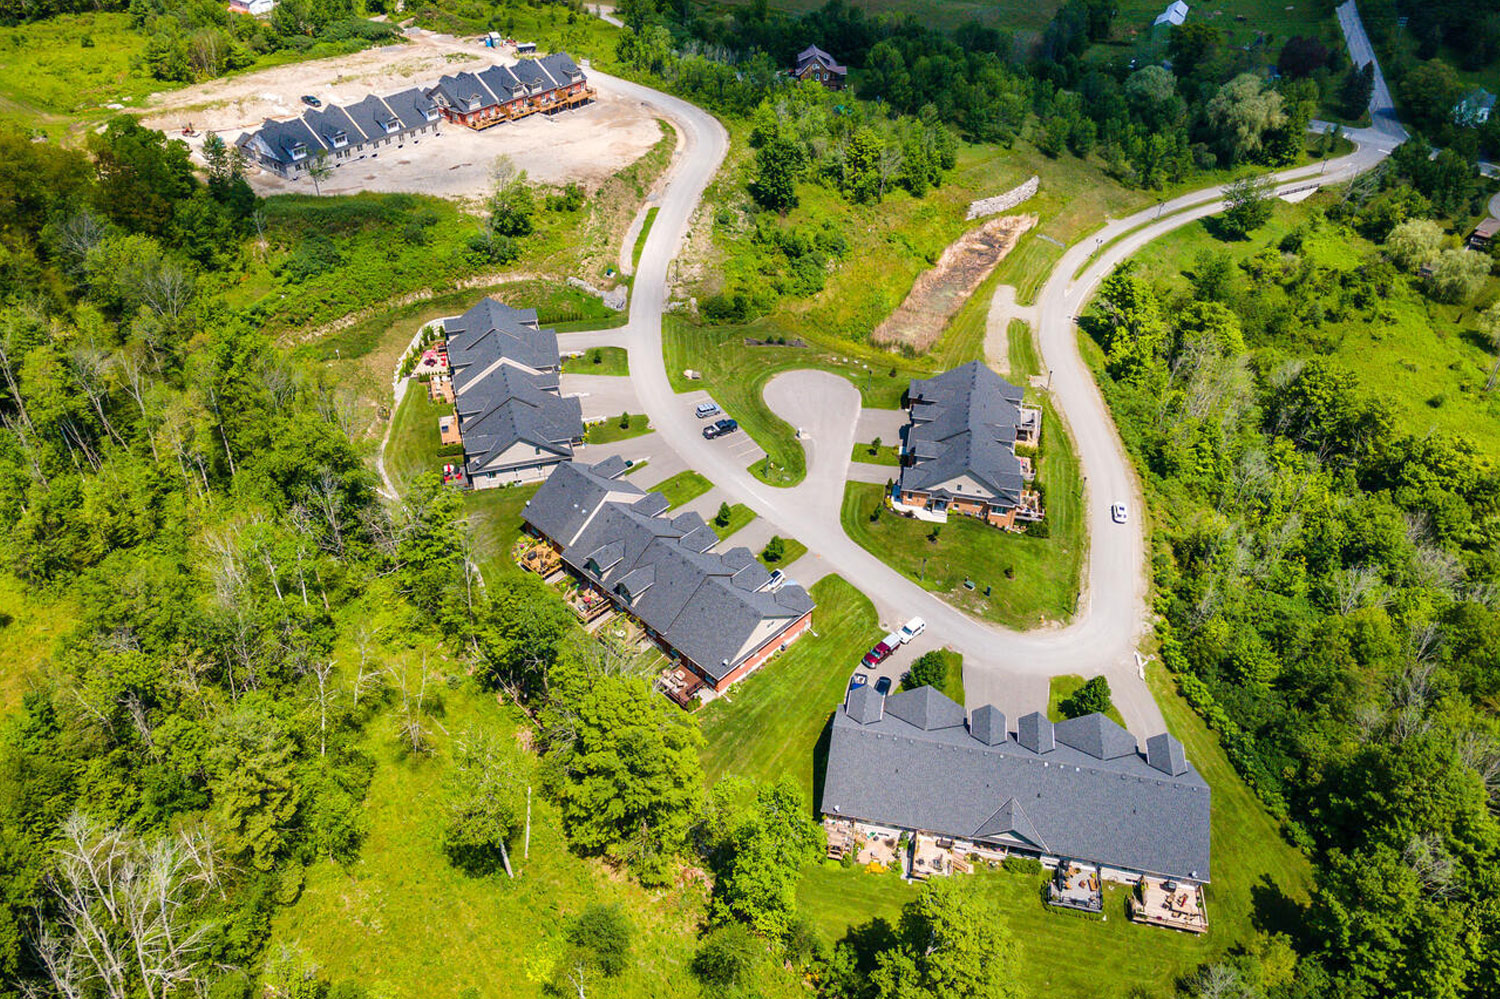 Orchard Hill Country Townhome development